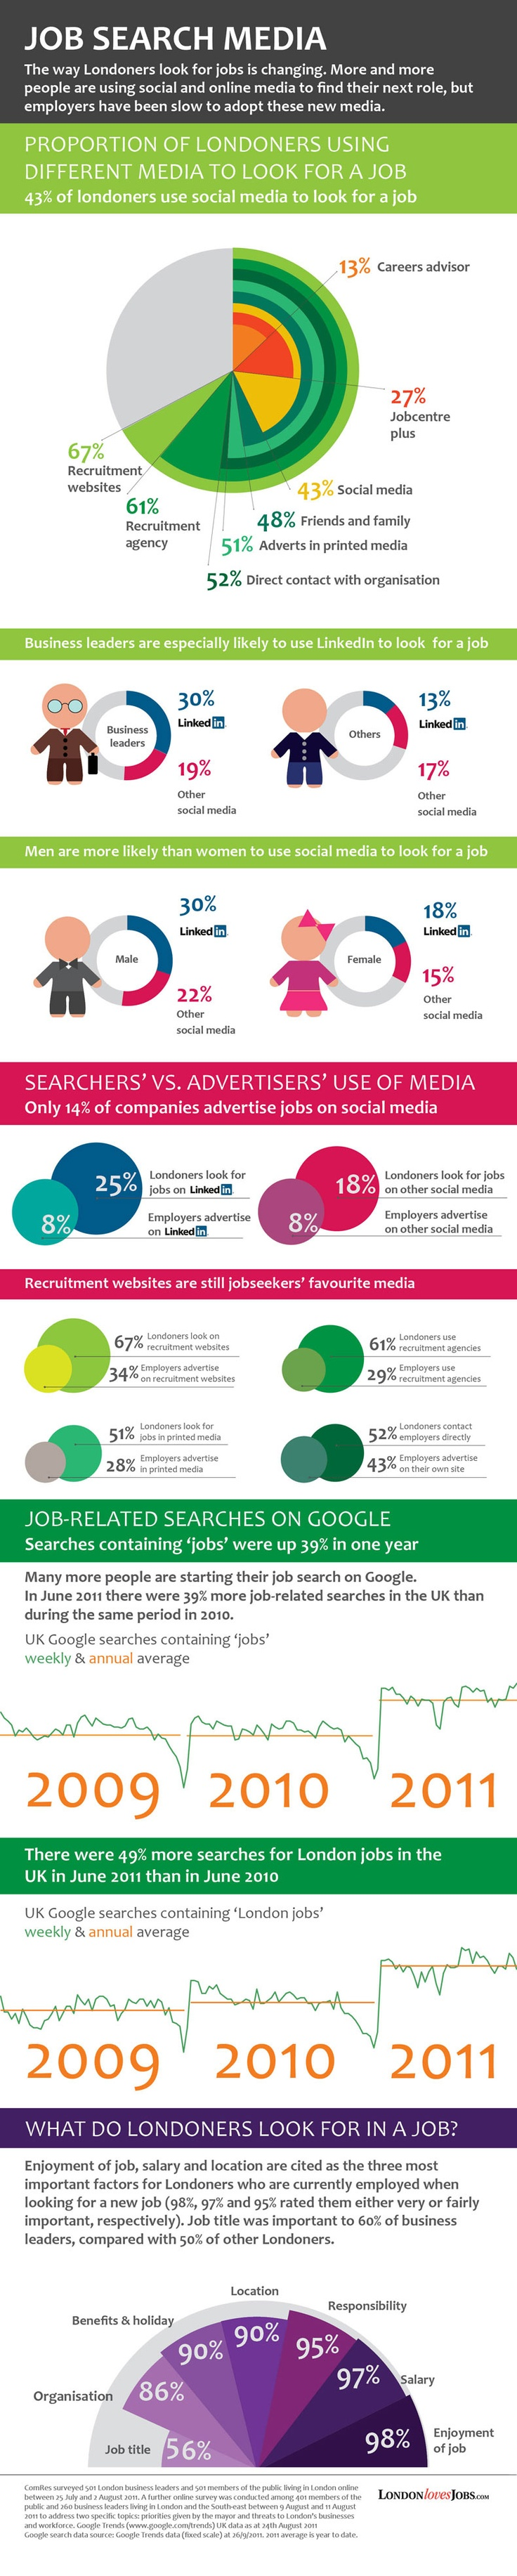 Inforgraphic: Using Social Media to Find a Job